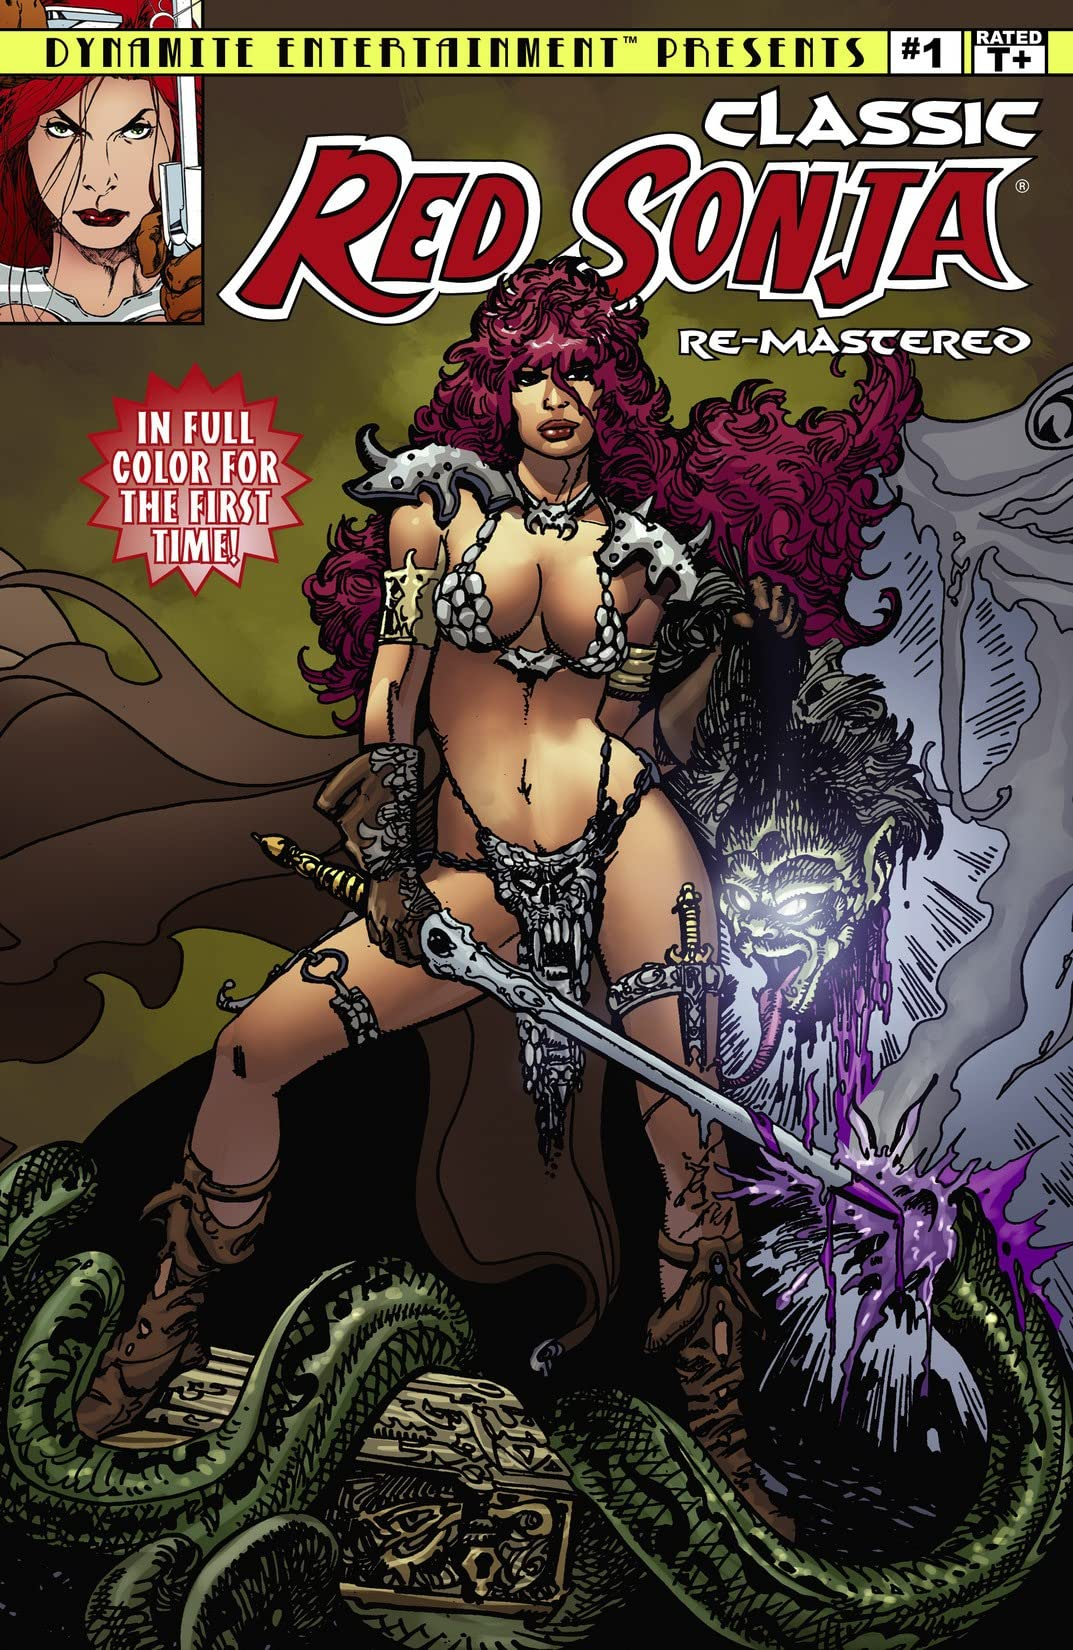 Classic Red Sonja Remastered #1